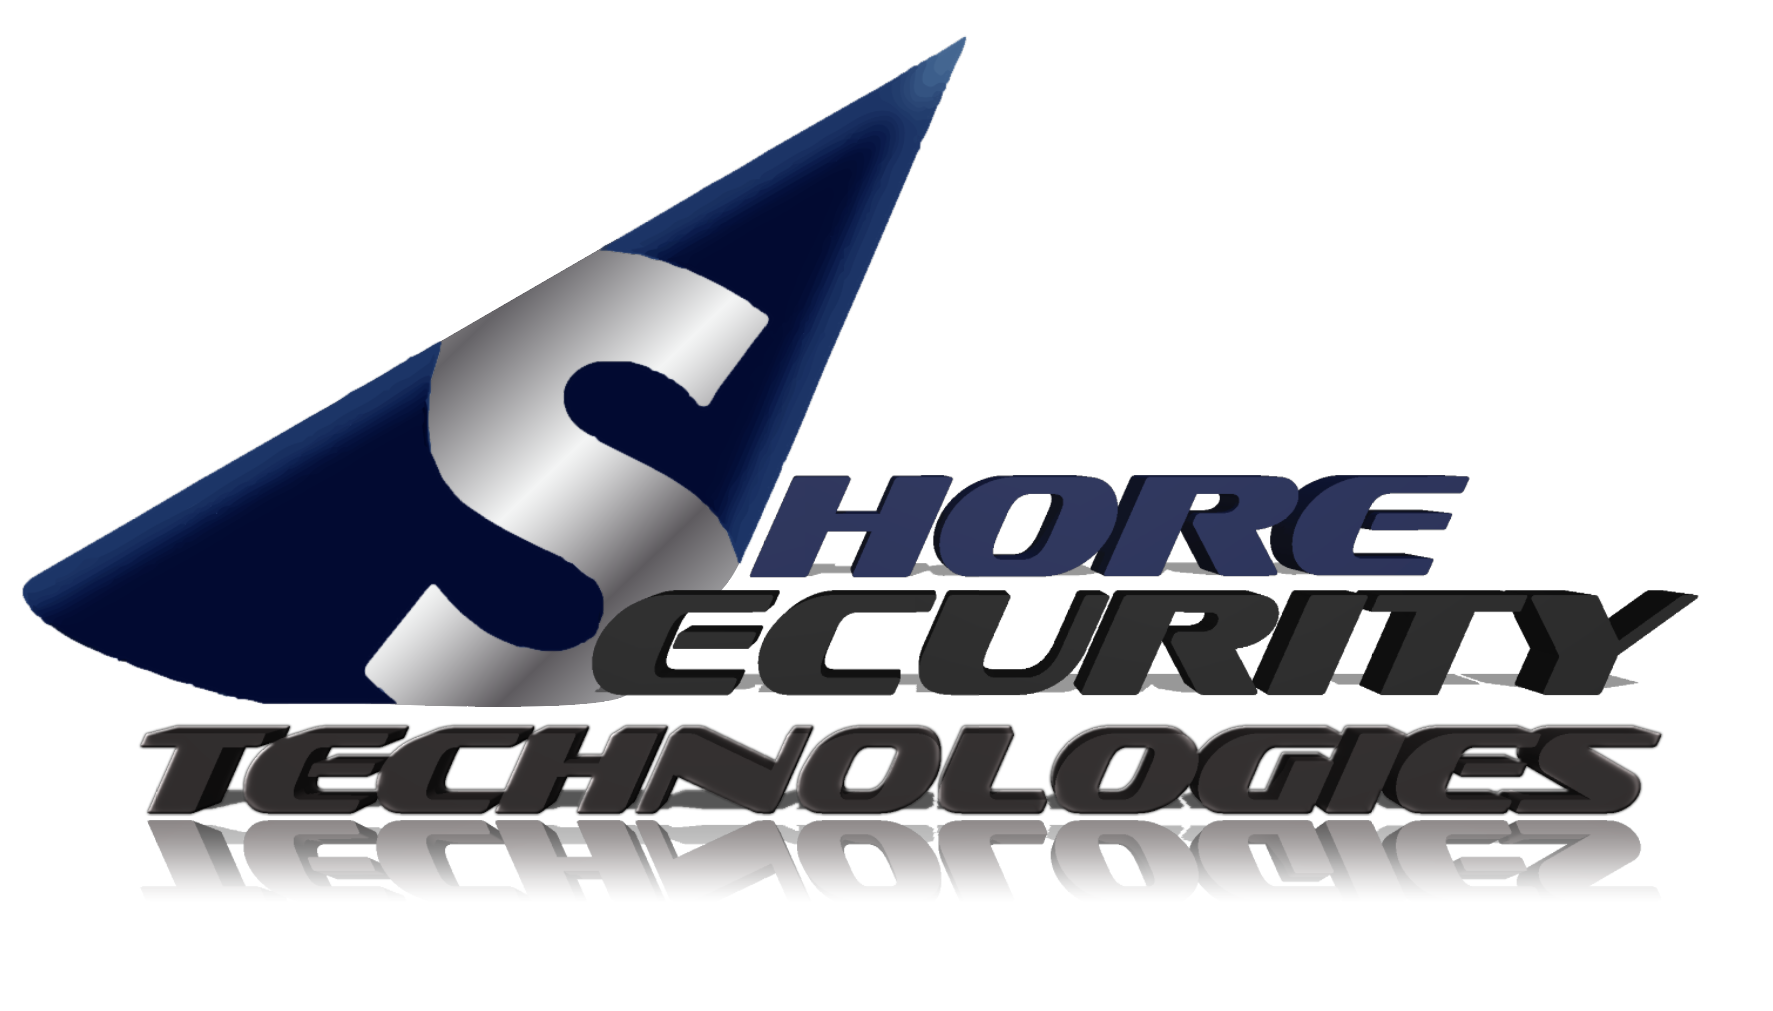 ShoreSecurityTechnologies_logo.png